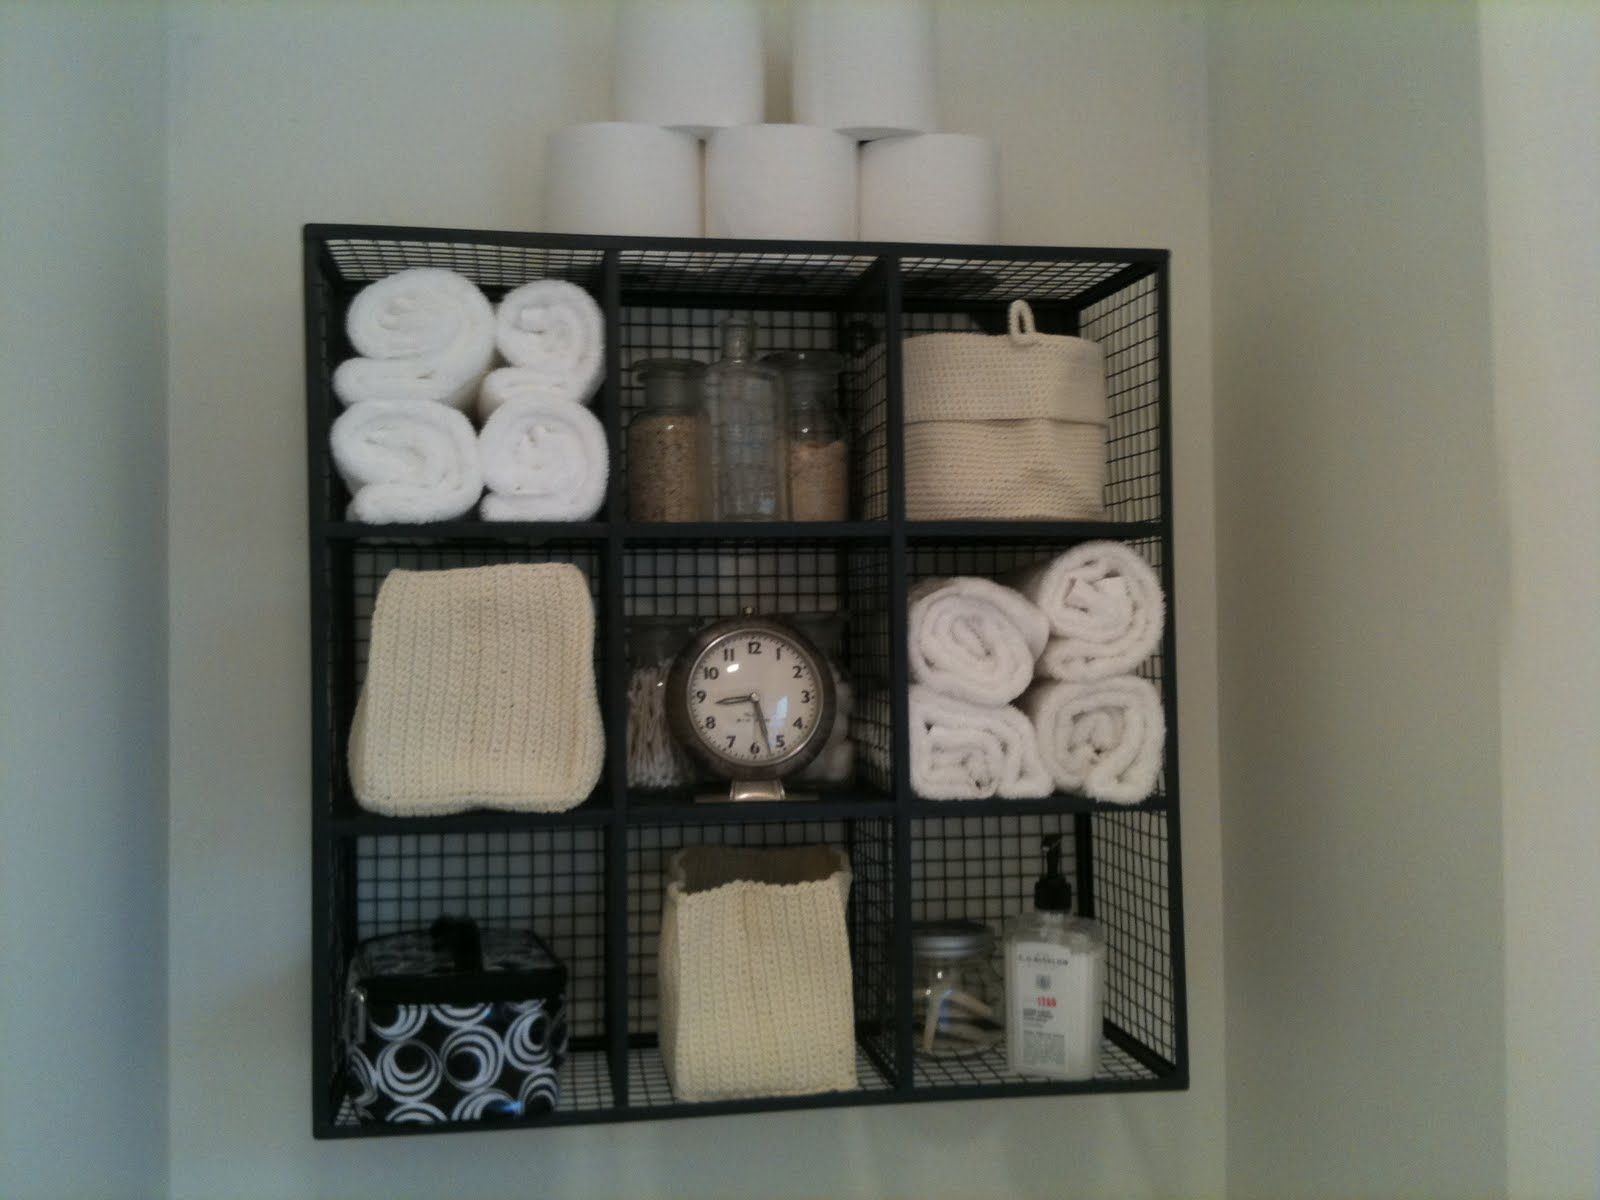 Over Toilet Bathroom Organizer | Above The Toilet Storage, With Very  Limited Storage, You